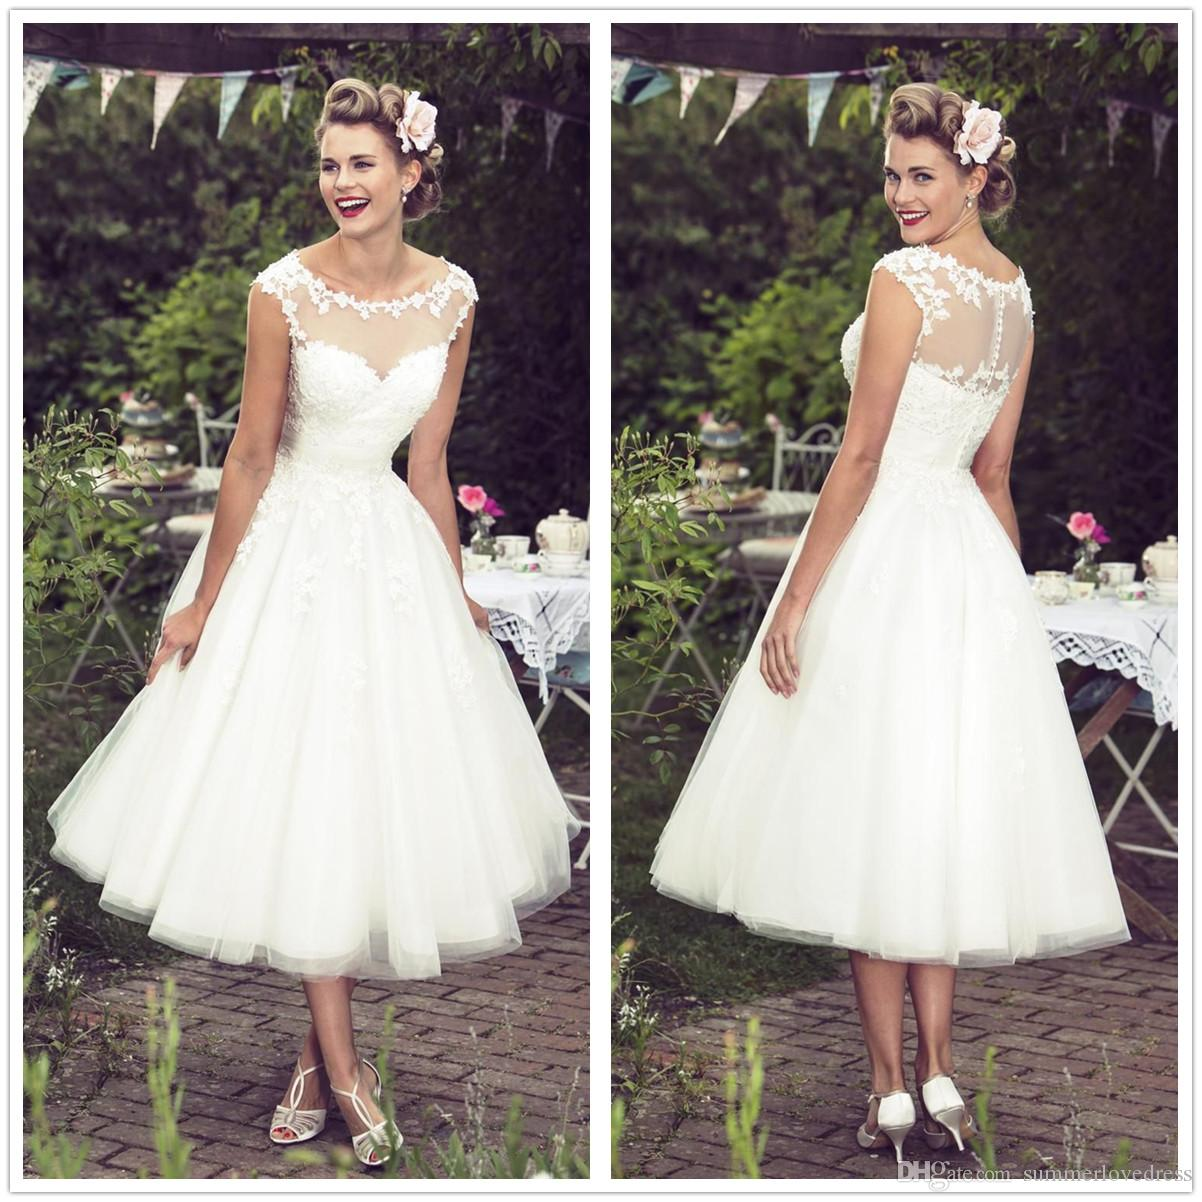 Discount Vintage 50S Style Short Lace Wedding Dresses Scoop Neck Tulle Applique Tea Length Bridal Gowns With Buttons